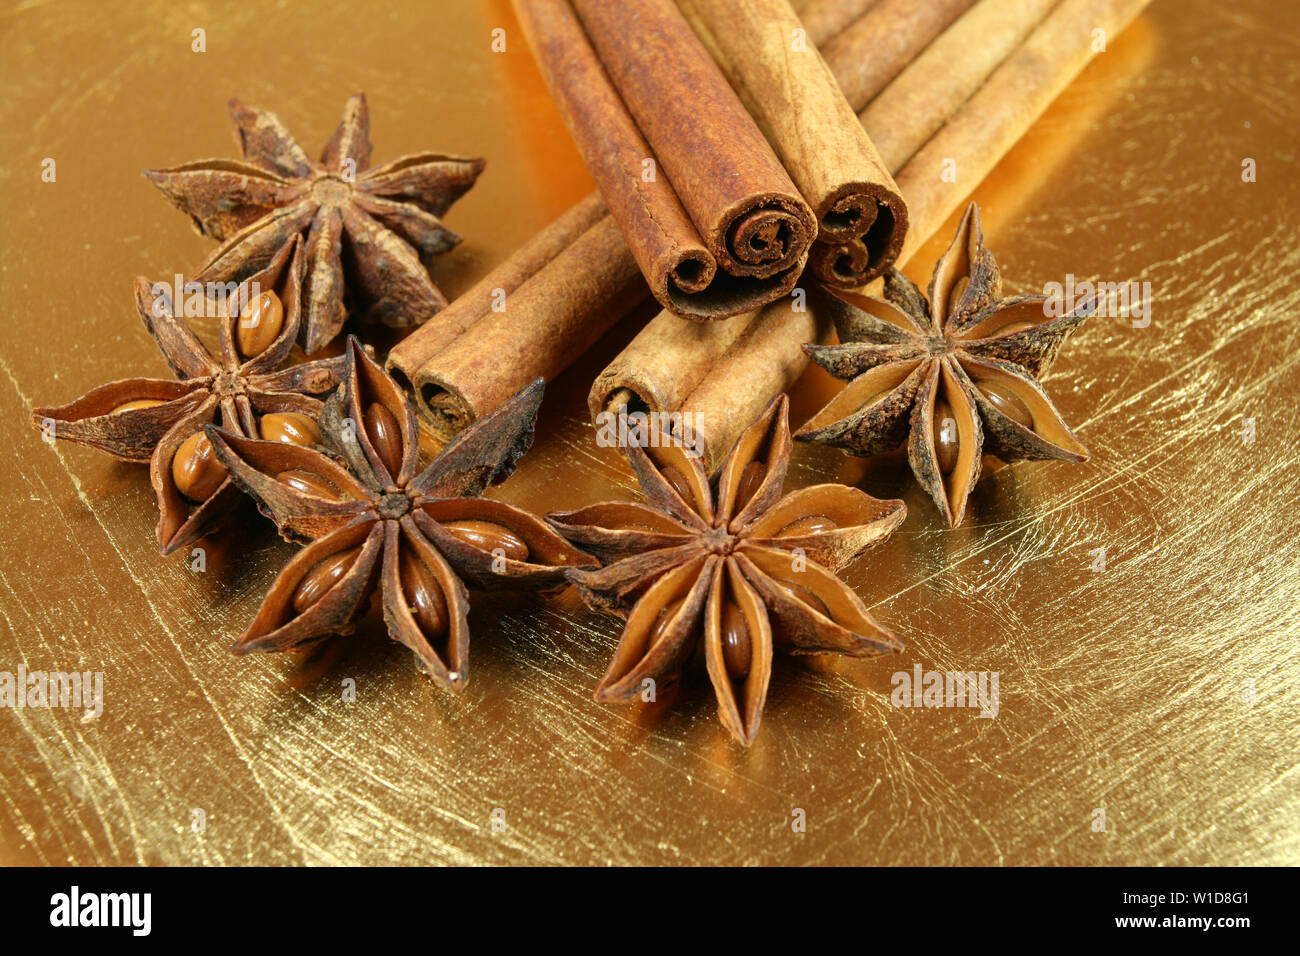 Anise stars and cinnamon sticks on golden cracked plate - Stock Image